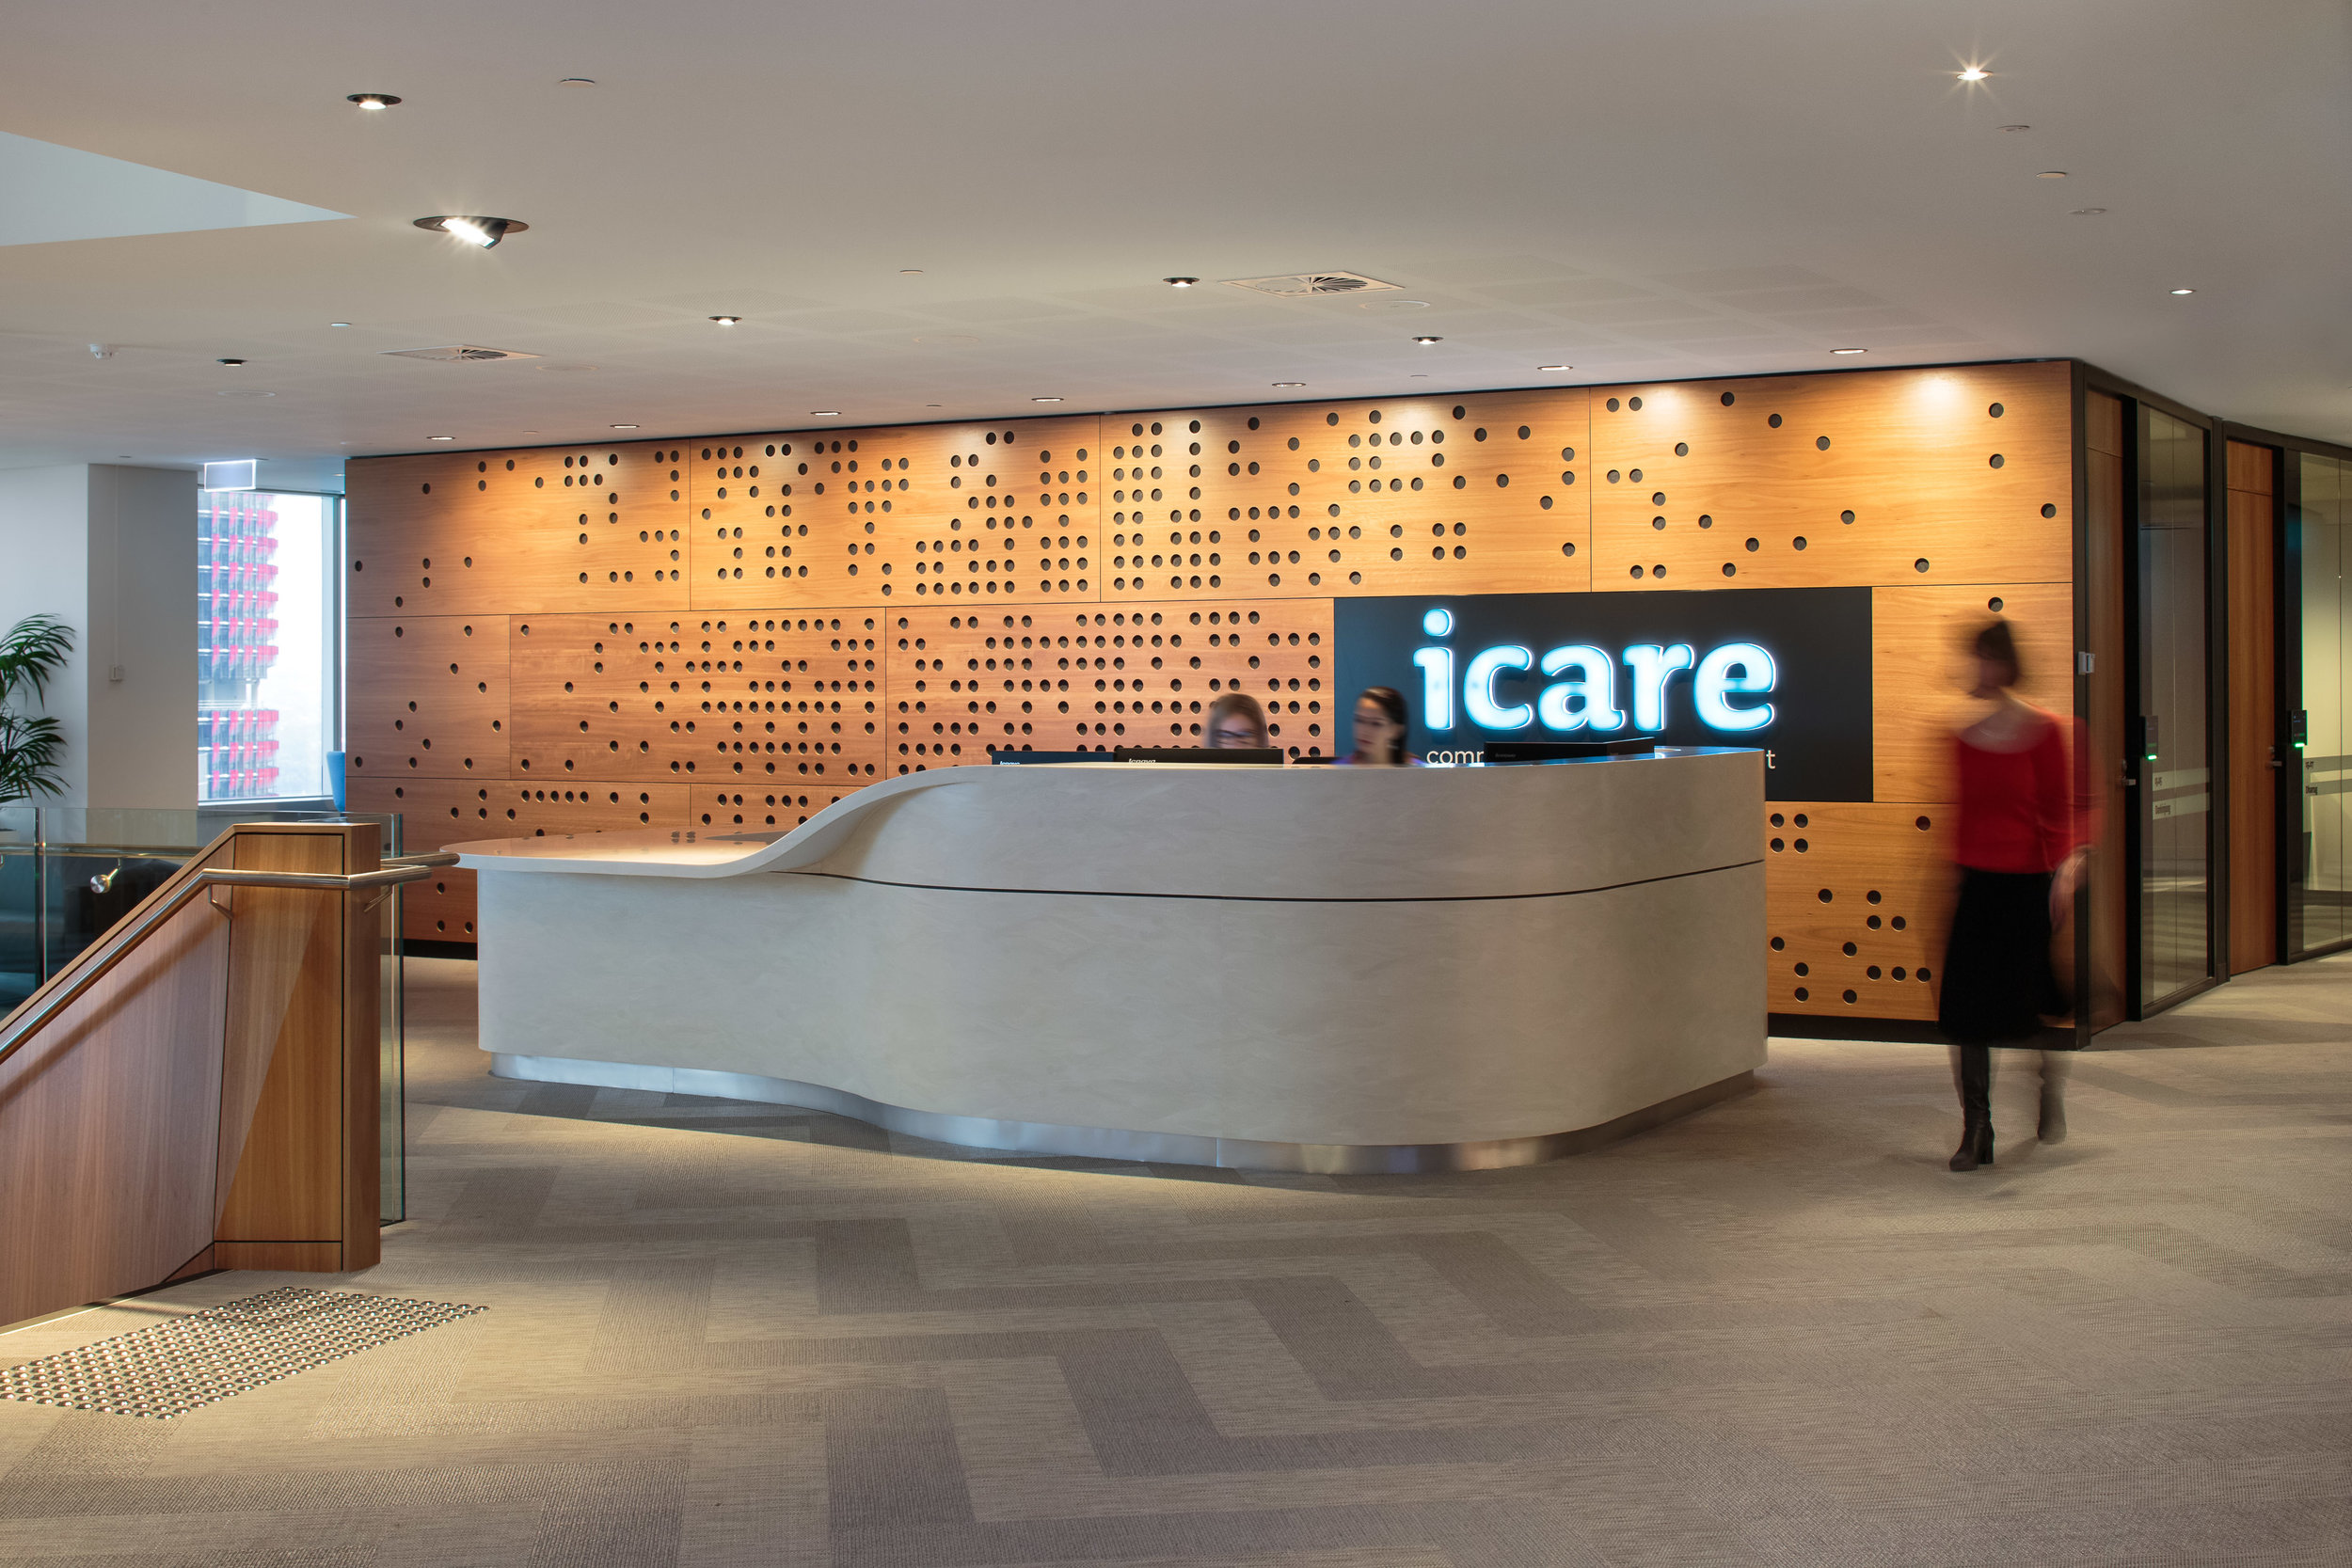 Copy of Icare